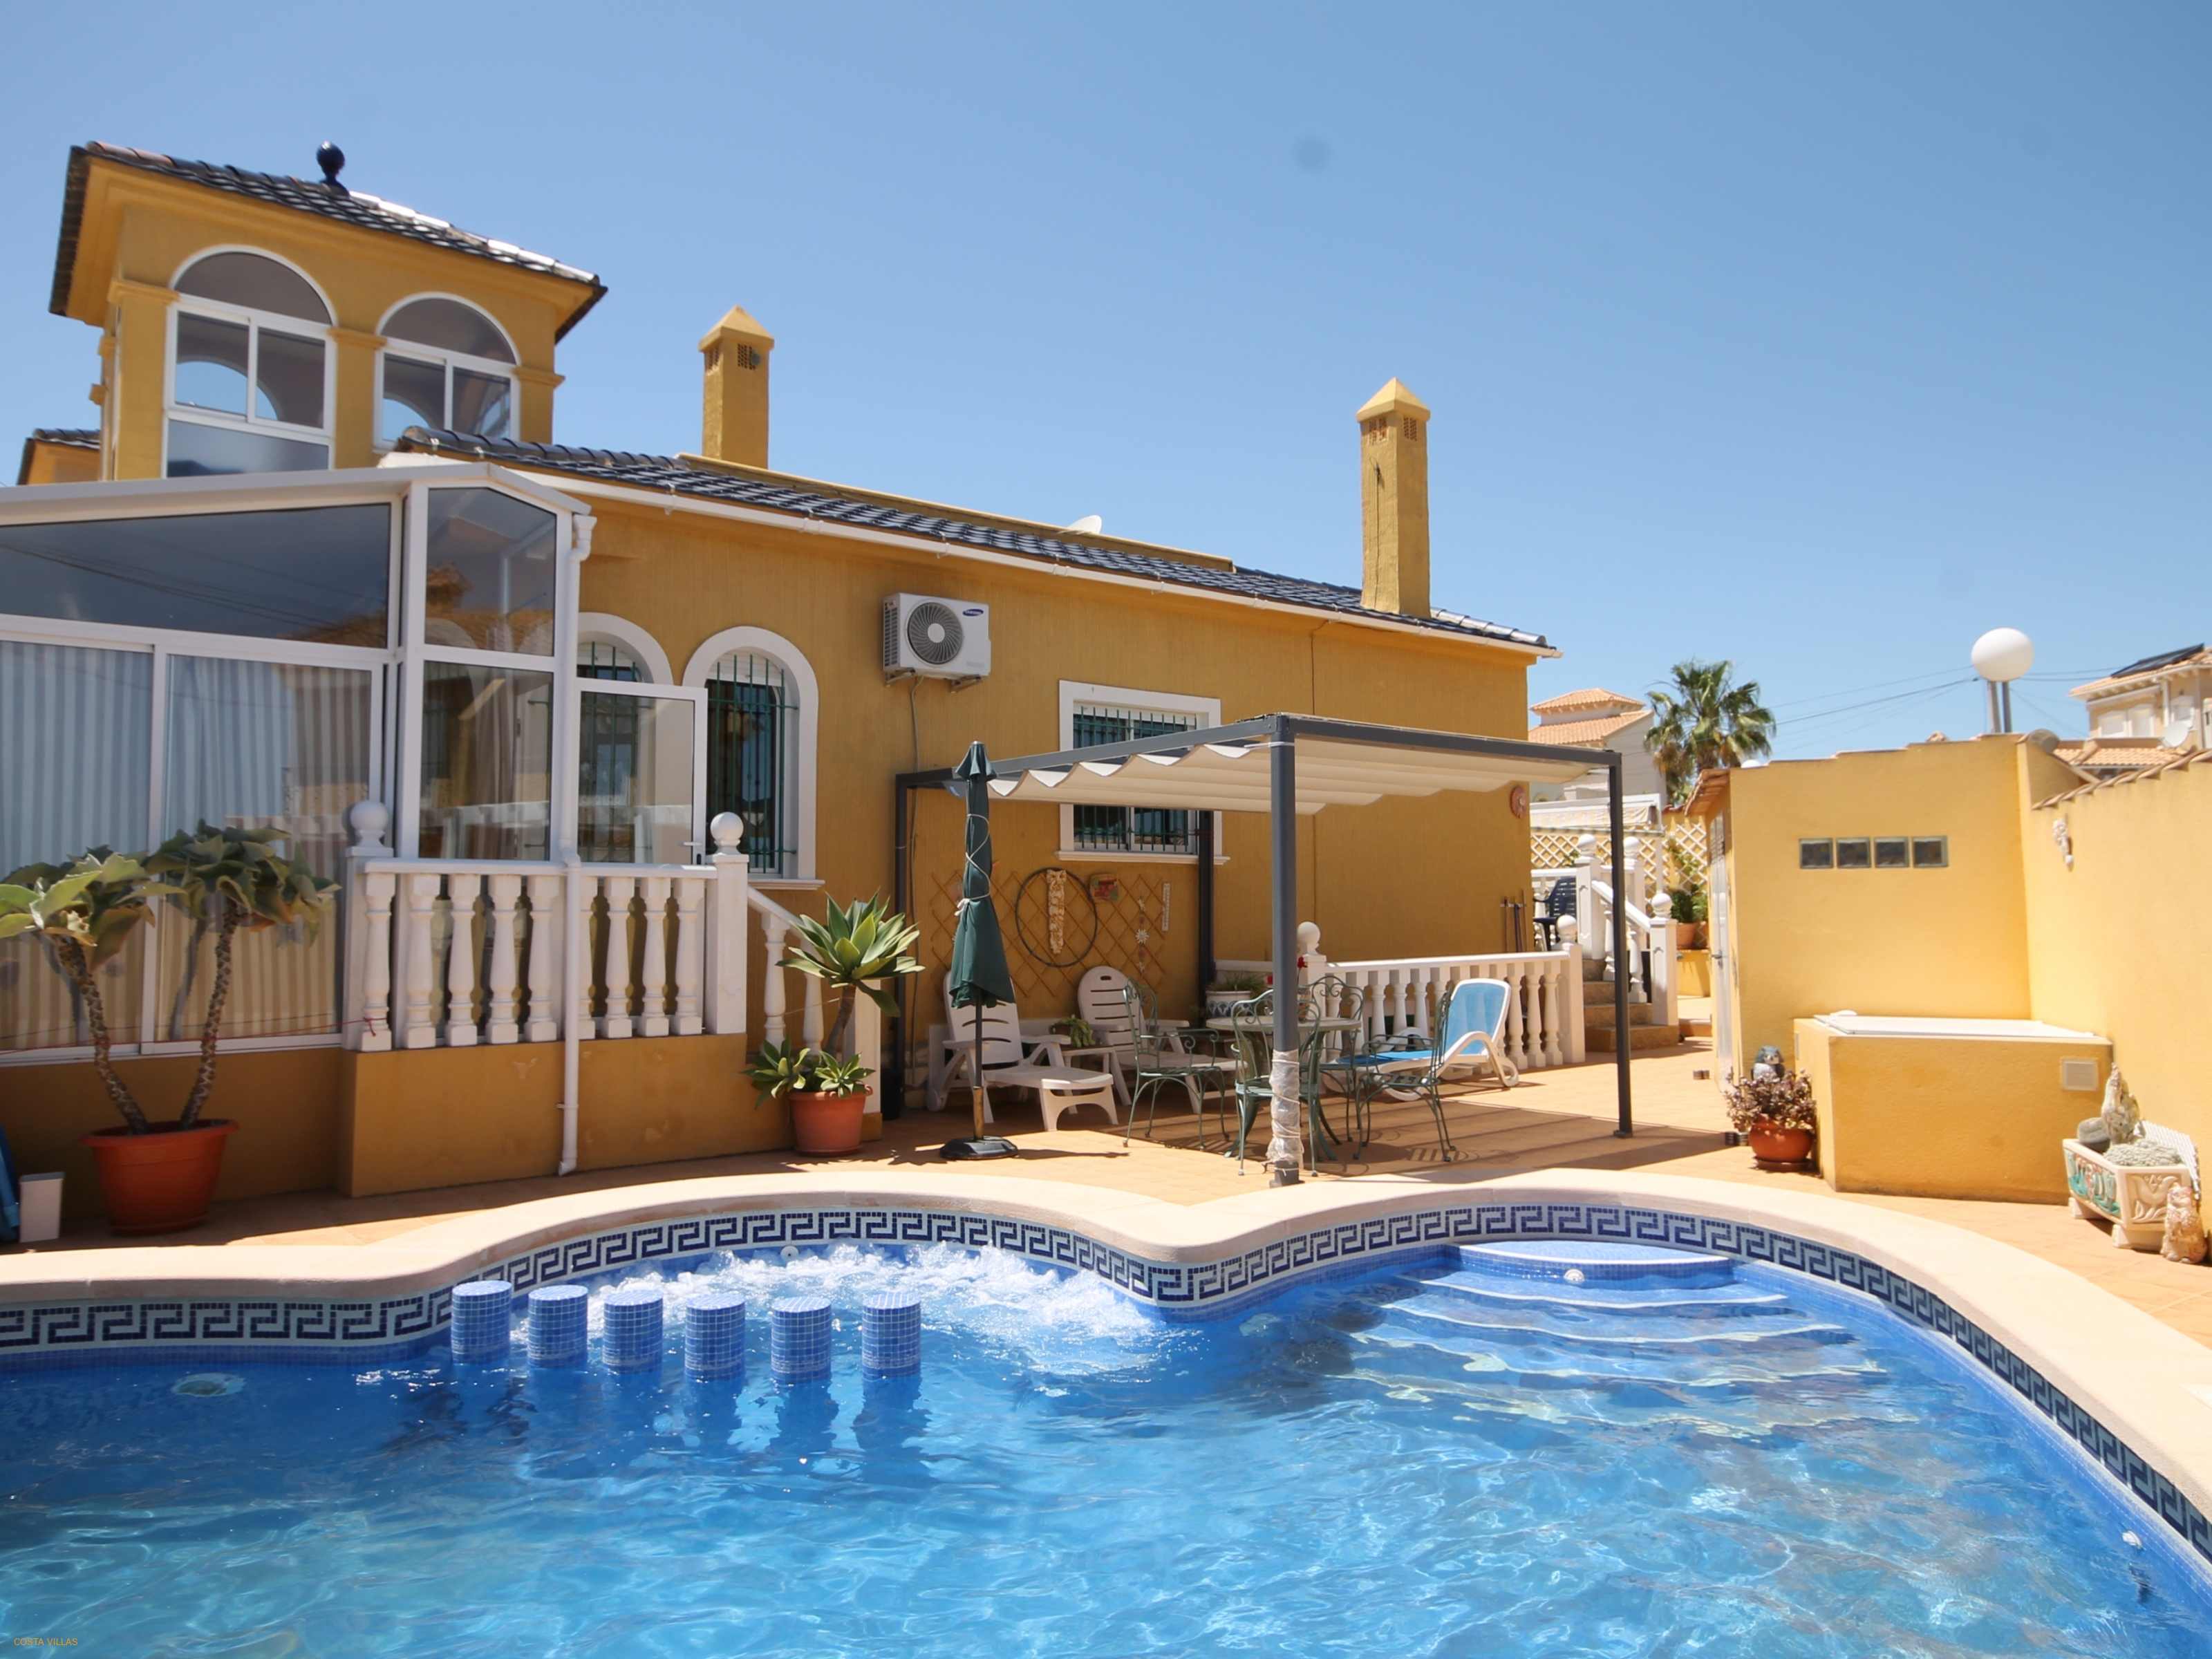 2 Bed, 2 Bath detached villa with pool and basement